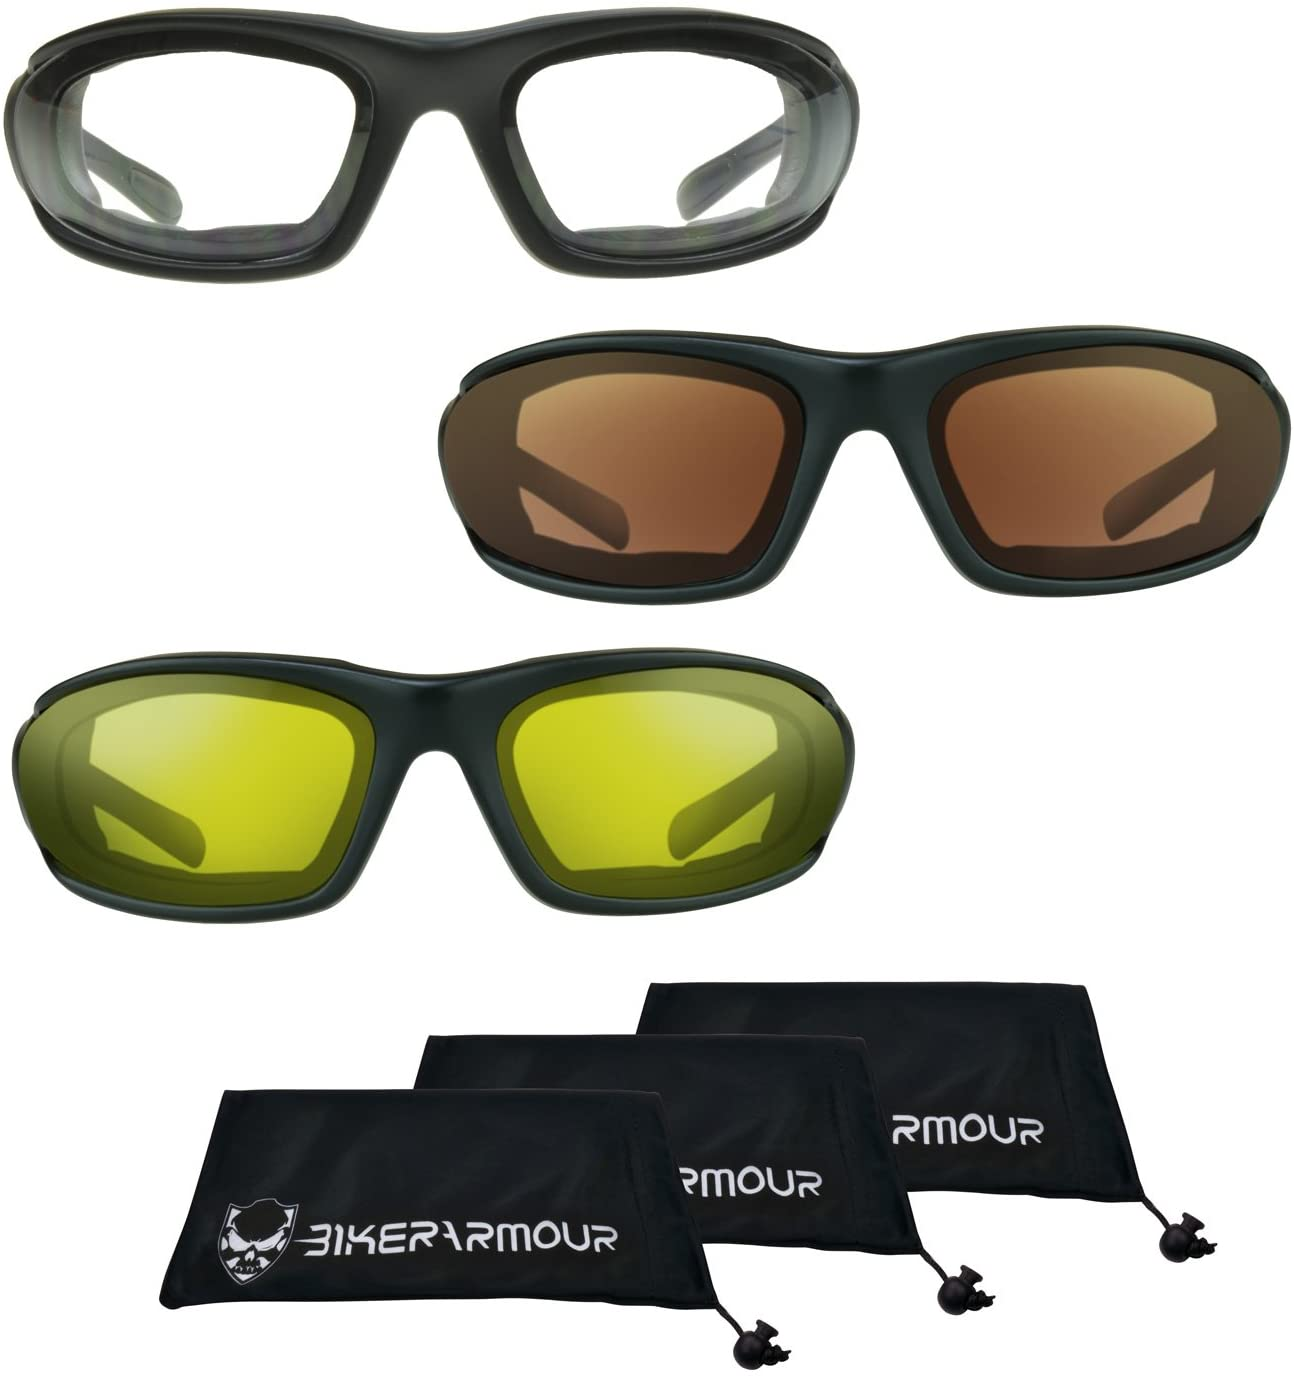 Motorcycle Glasses Foam Padded 3 pairs combo special